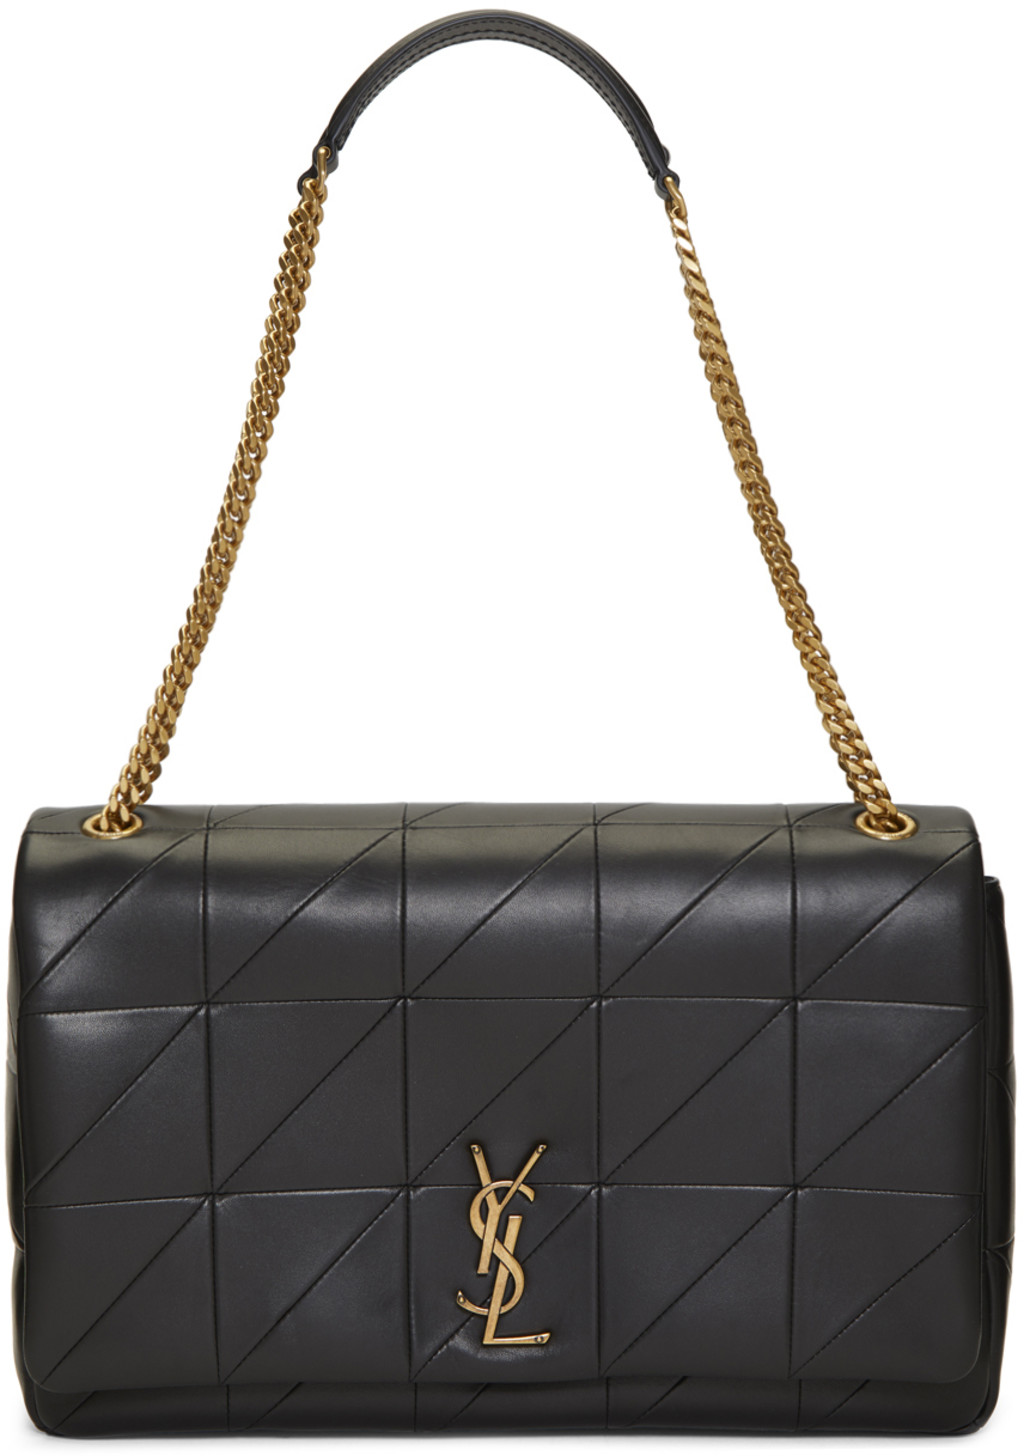 5e07e5e8bfe2 Saint Laurent bags for Women